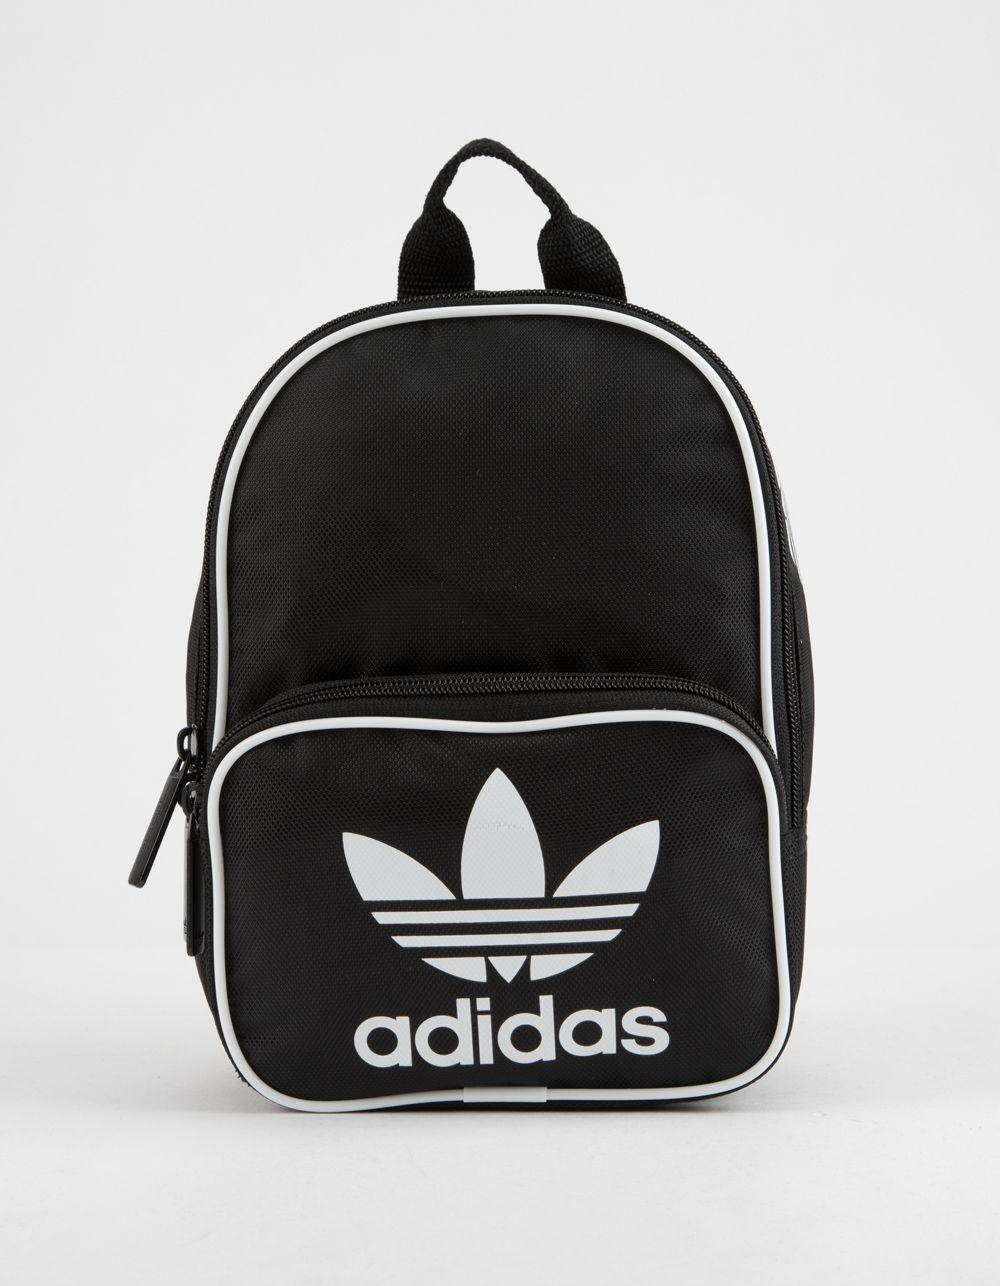 08da28f7de7 Adidas - Originals Santiago Black Mini Backpack - Lyst. View fullscreen